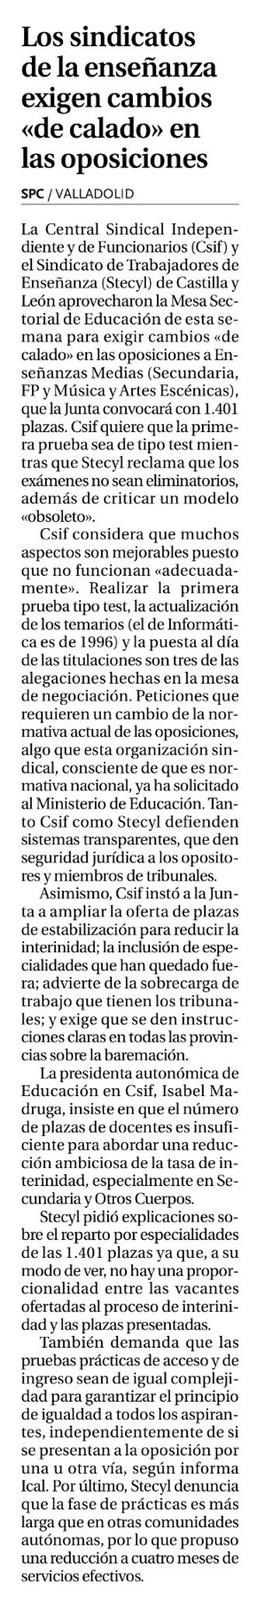 Comunicado-Prensa-Modificaciones